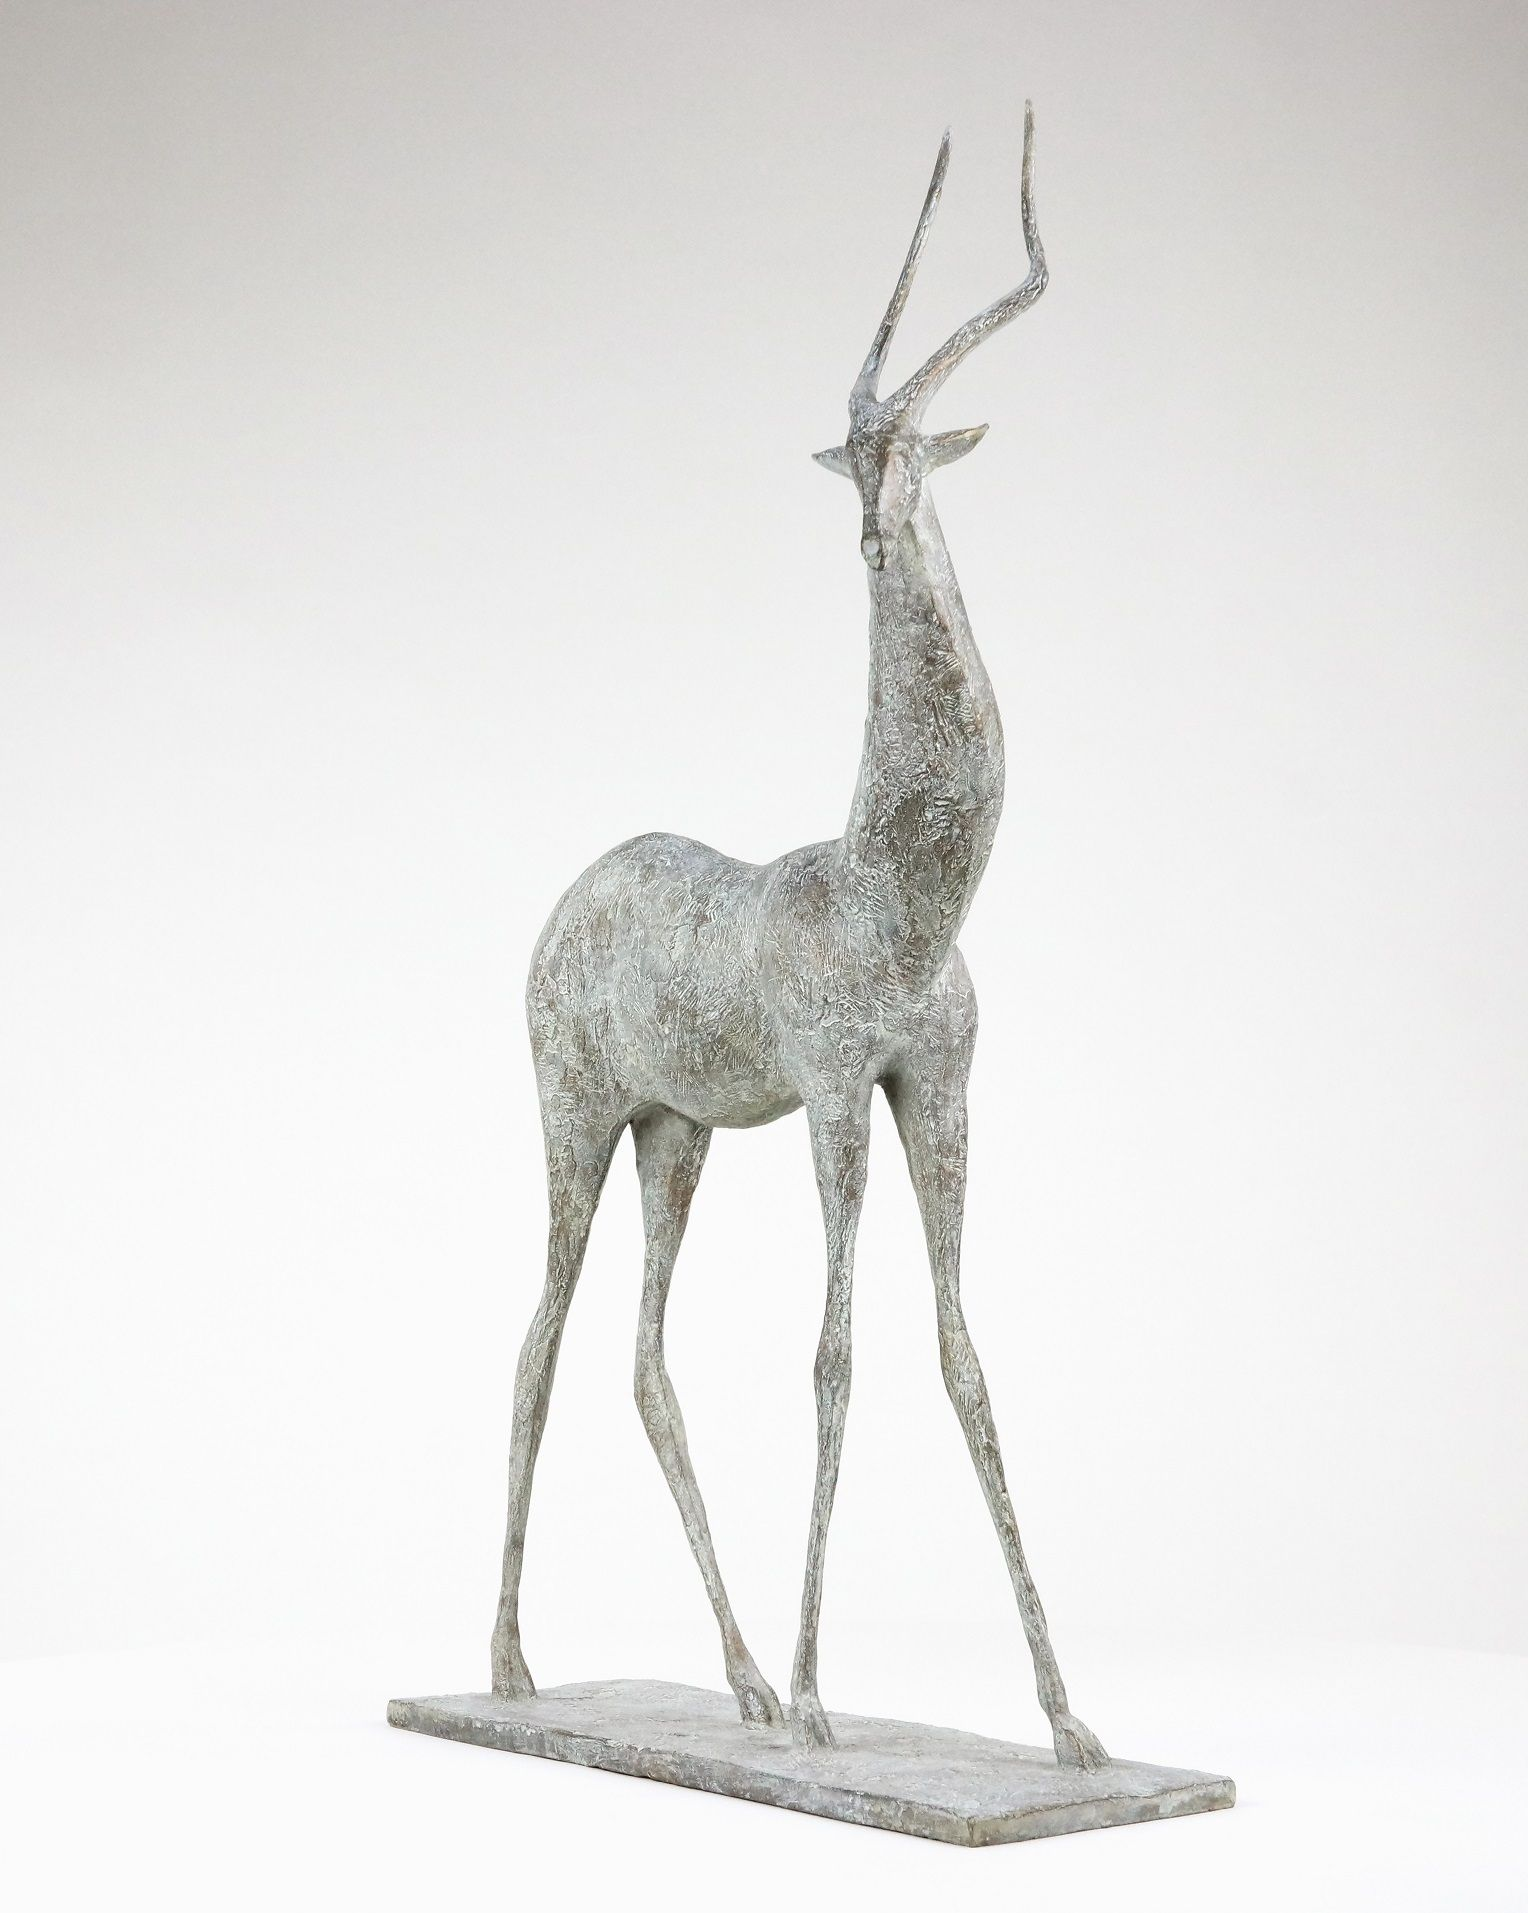 Gazelle I,Pierre Yermia,Sculpture contemporaine, detail 3